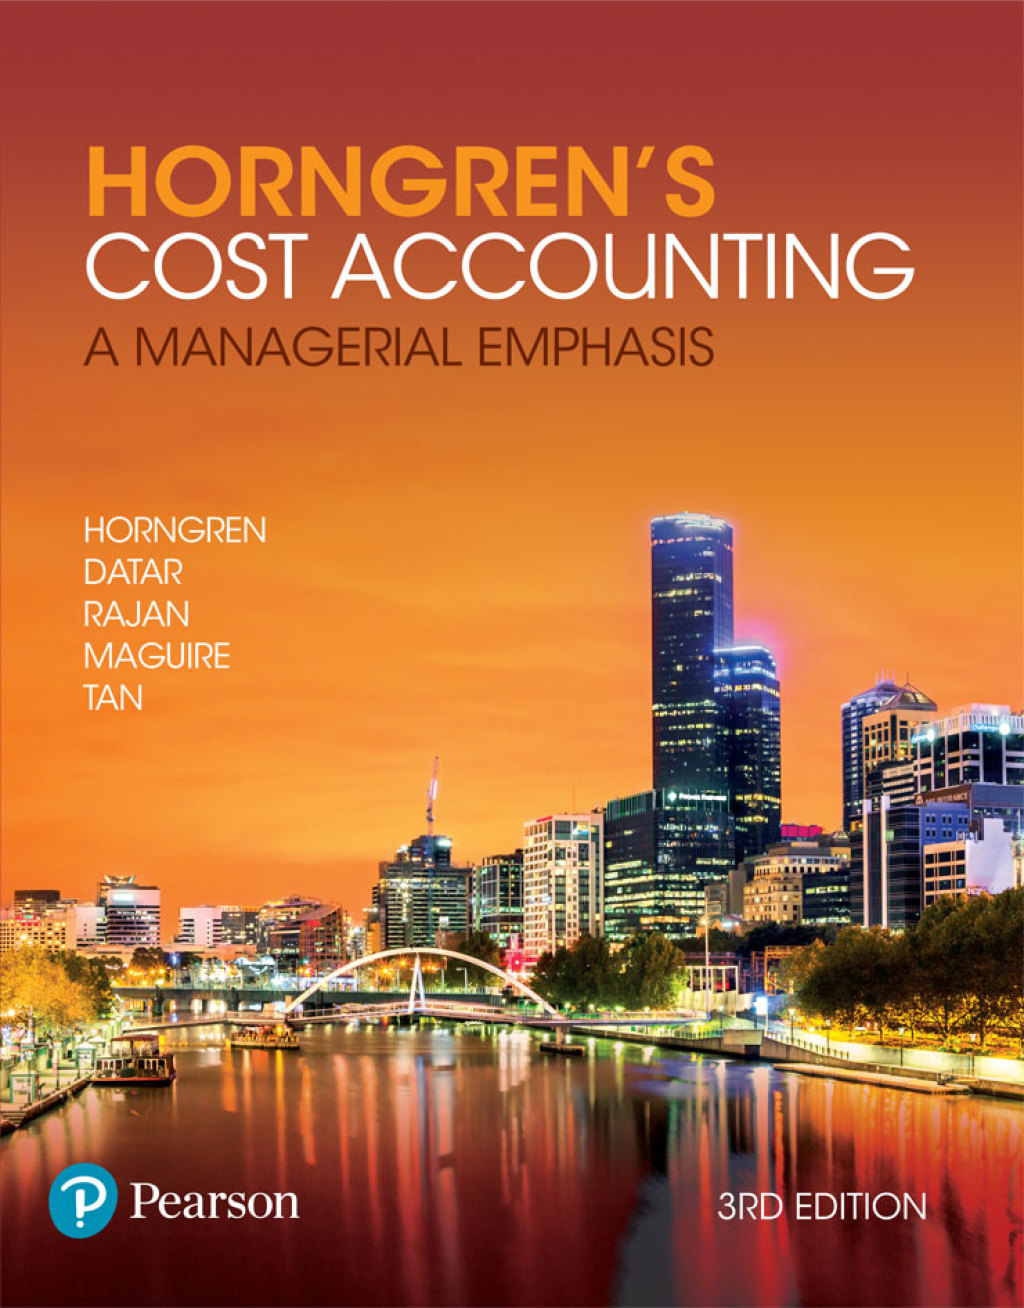 horngren cost accounting 14e Cost accounting a managerial emphasis 14th edition solution cost accounting a managerial emphasis 14th edition solution manual pdf cost accounting: a managerial emphasis, 14 th edition horngren, datar and rajan.